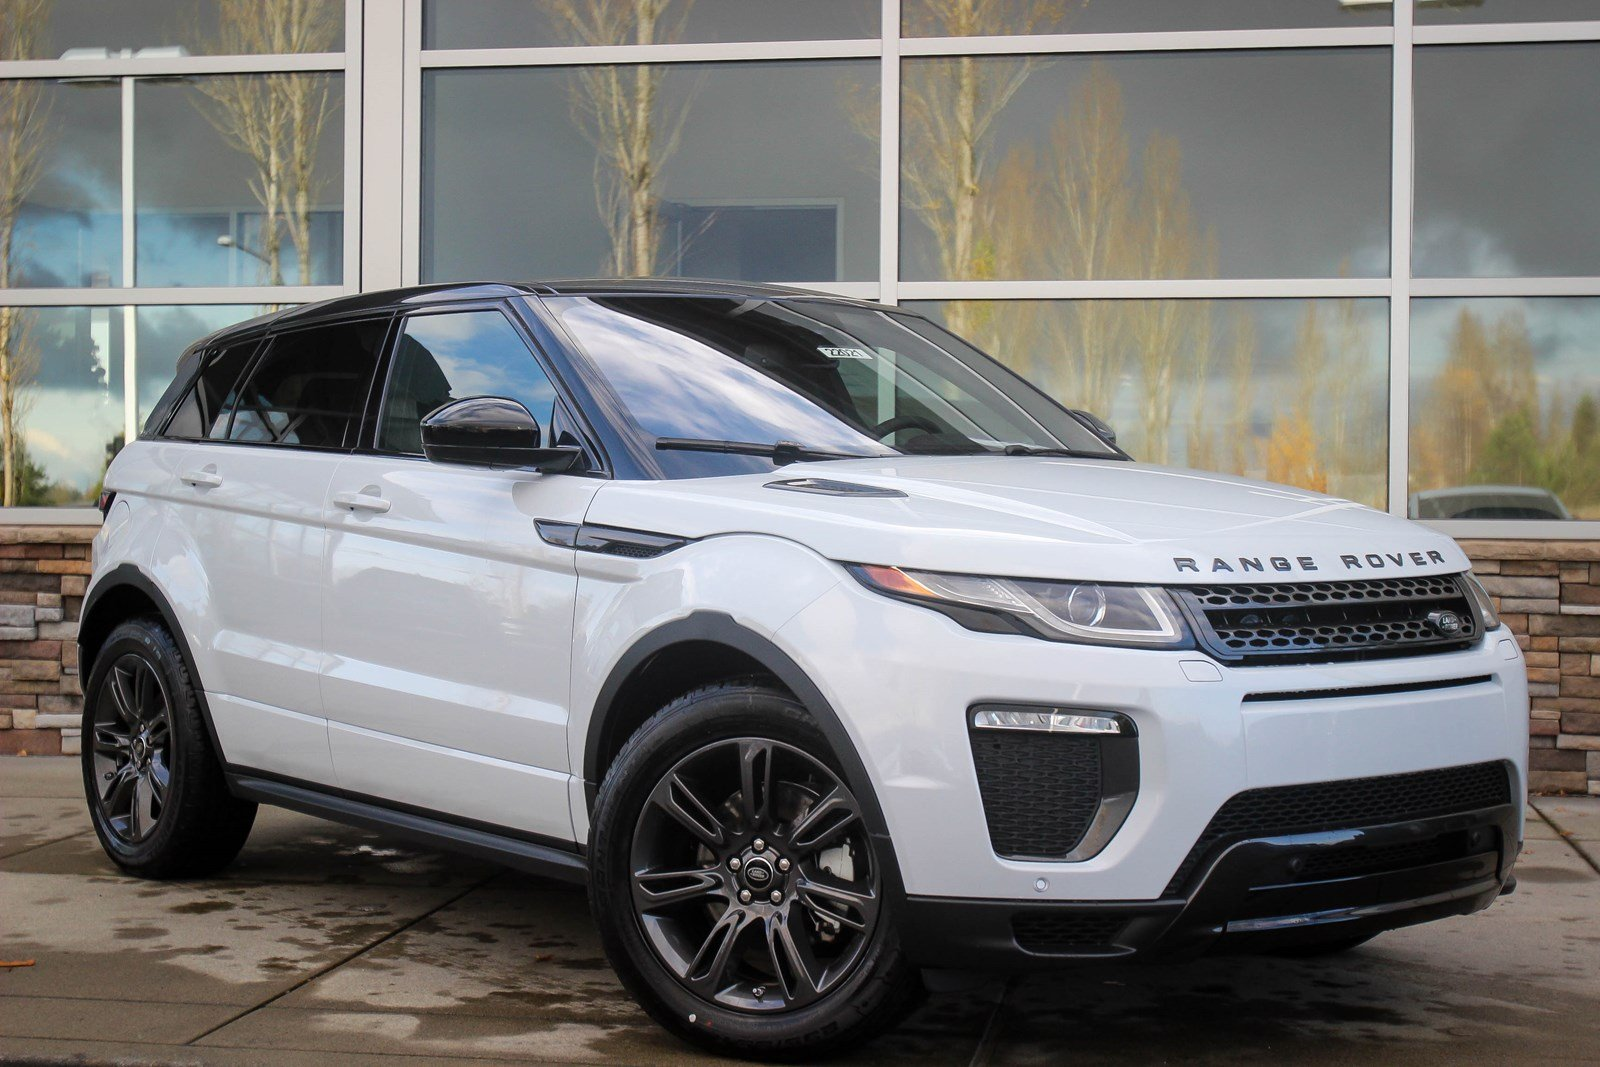 New 2018 Land Rover Range Rover Evoque Landmark Edition